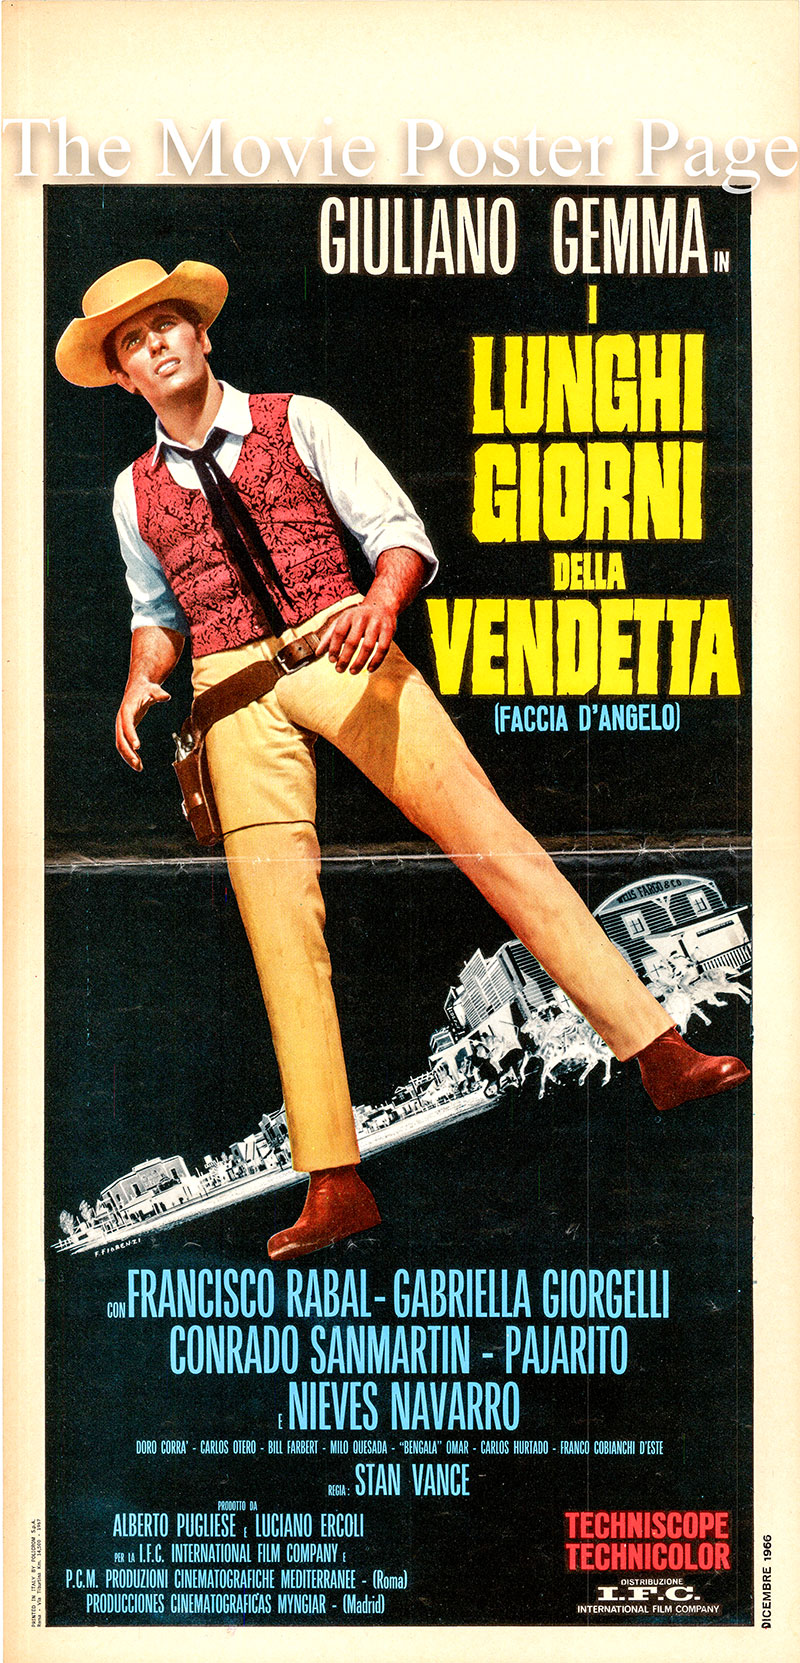 Pictured is the Italian locandina promotional poster for the 1967 Florestano Vancini film Vendetta, starring Giuliano Gemma.